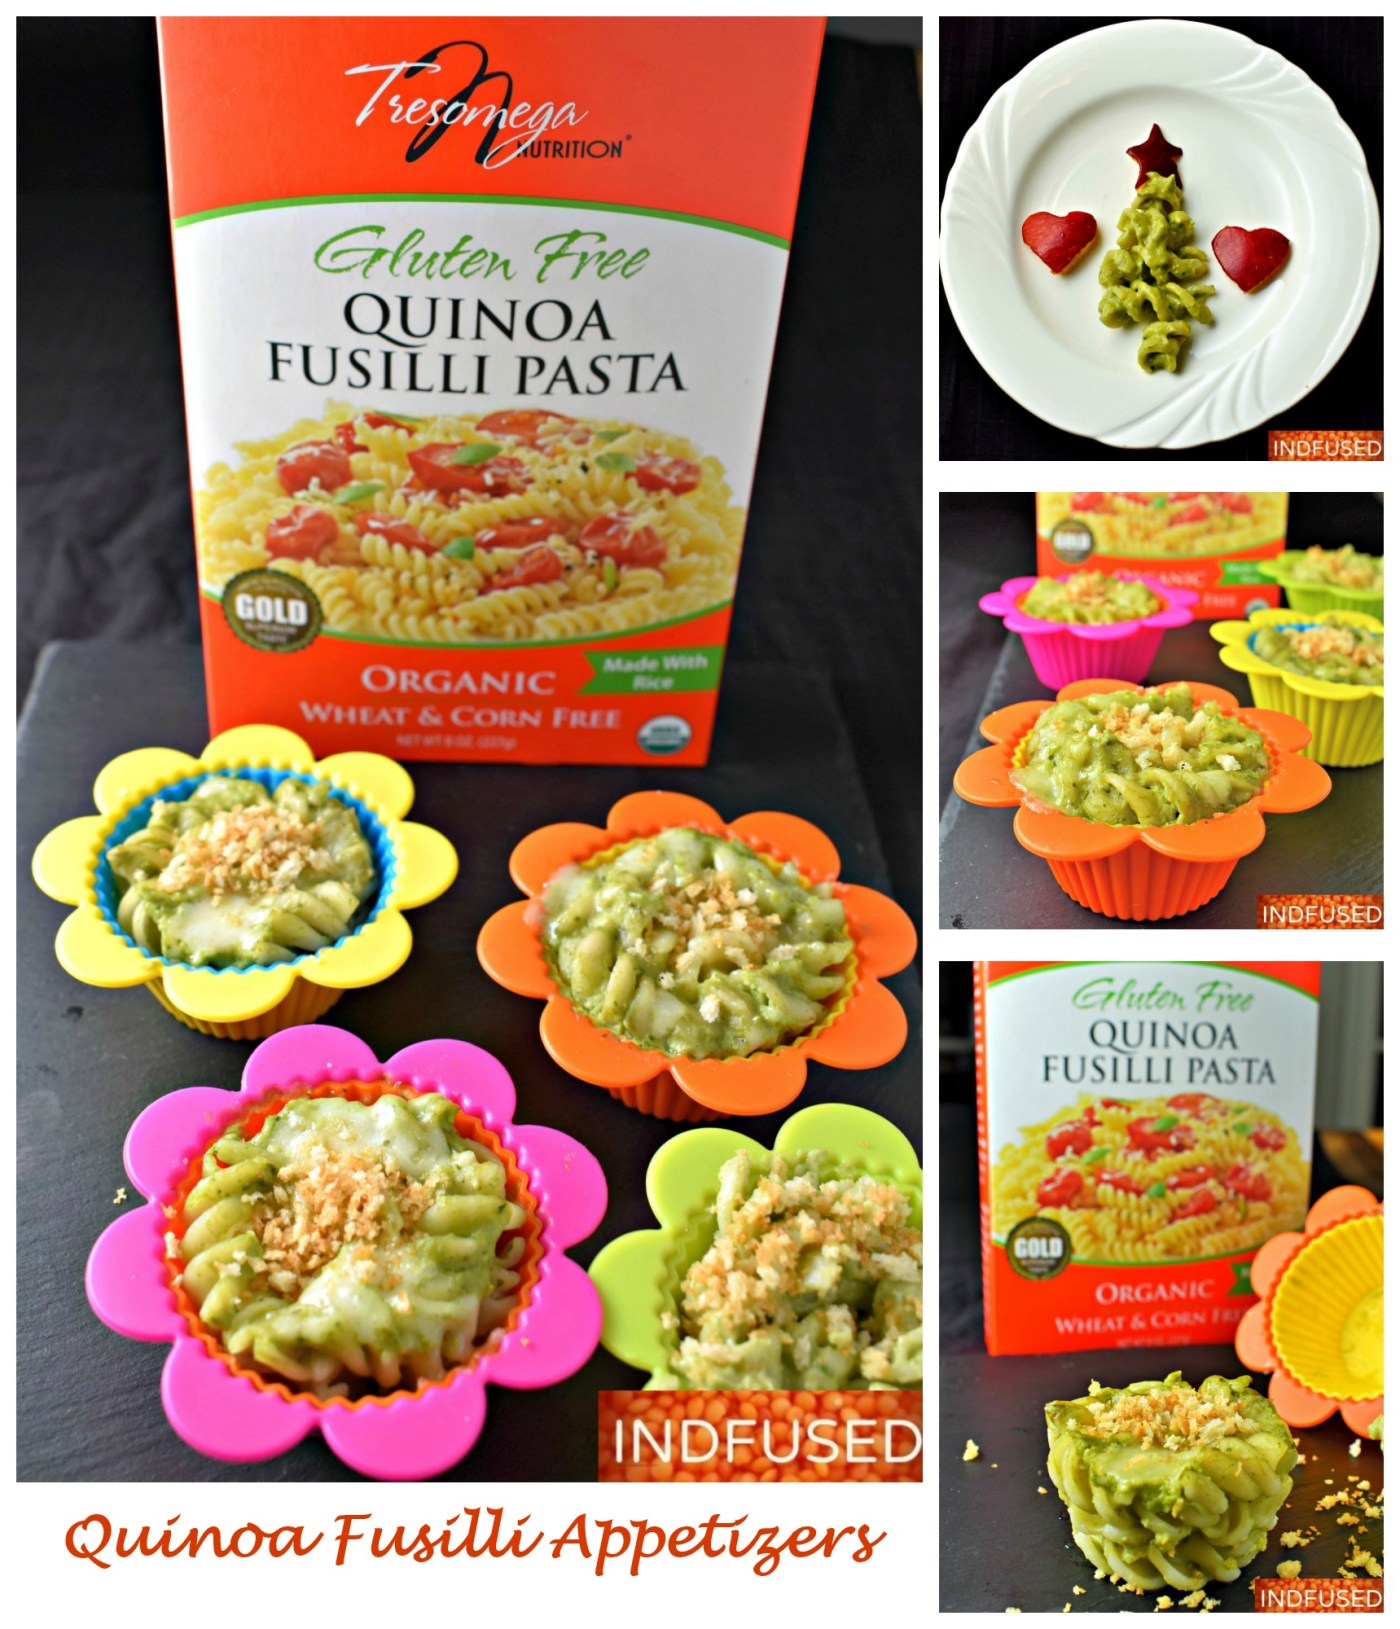 Quinoa Fusilli Appetizers - vegetarian, gluten free Christmas trees or 8 servings of baked fusilli cups